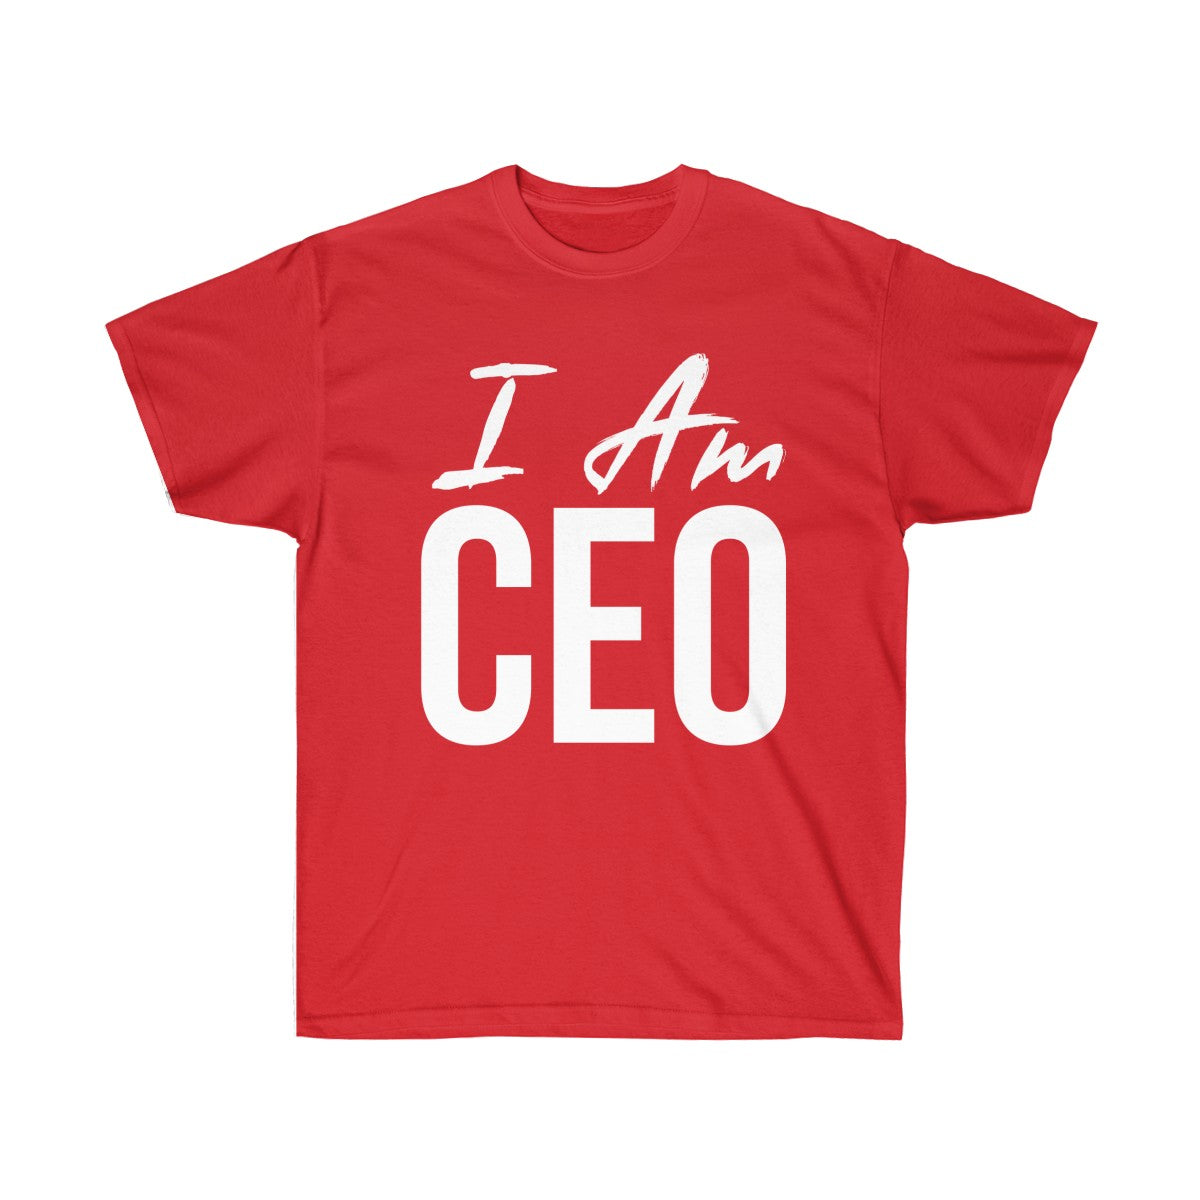 Unisex I AM CEO - Peyticakes